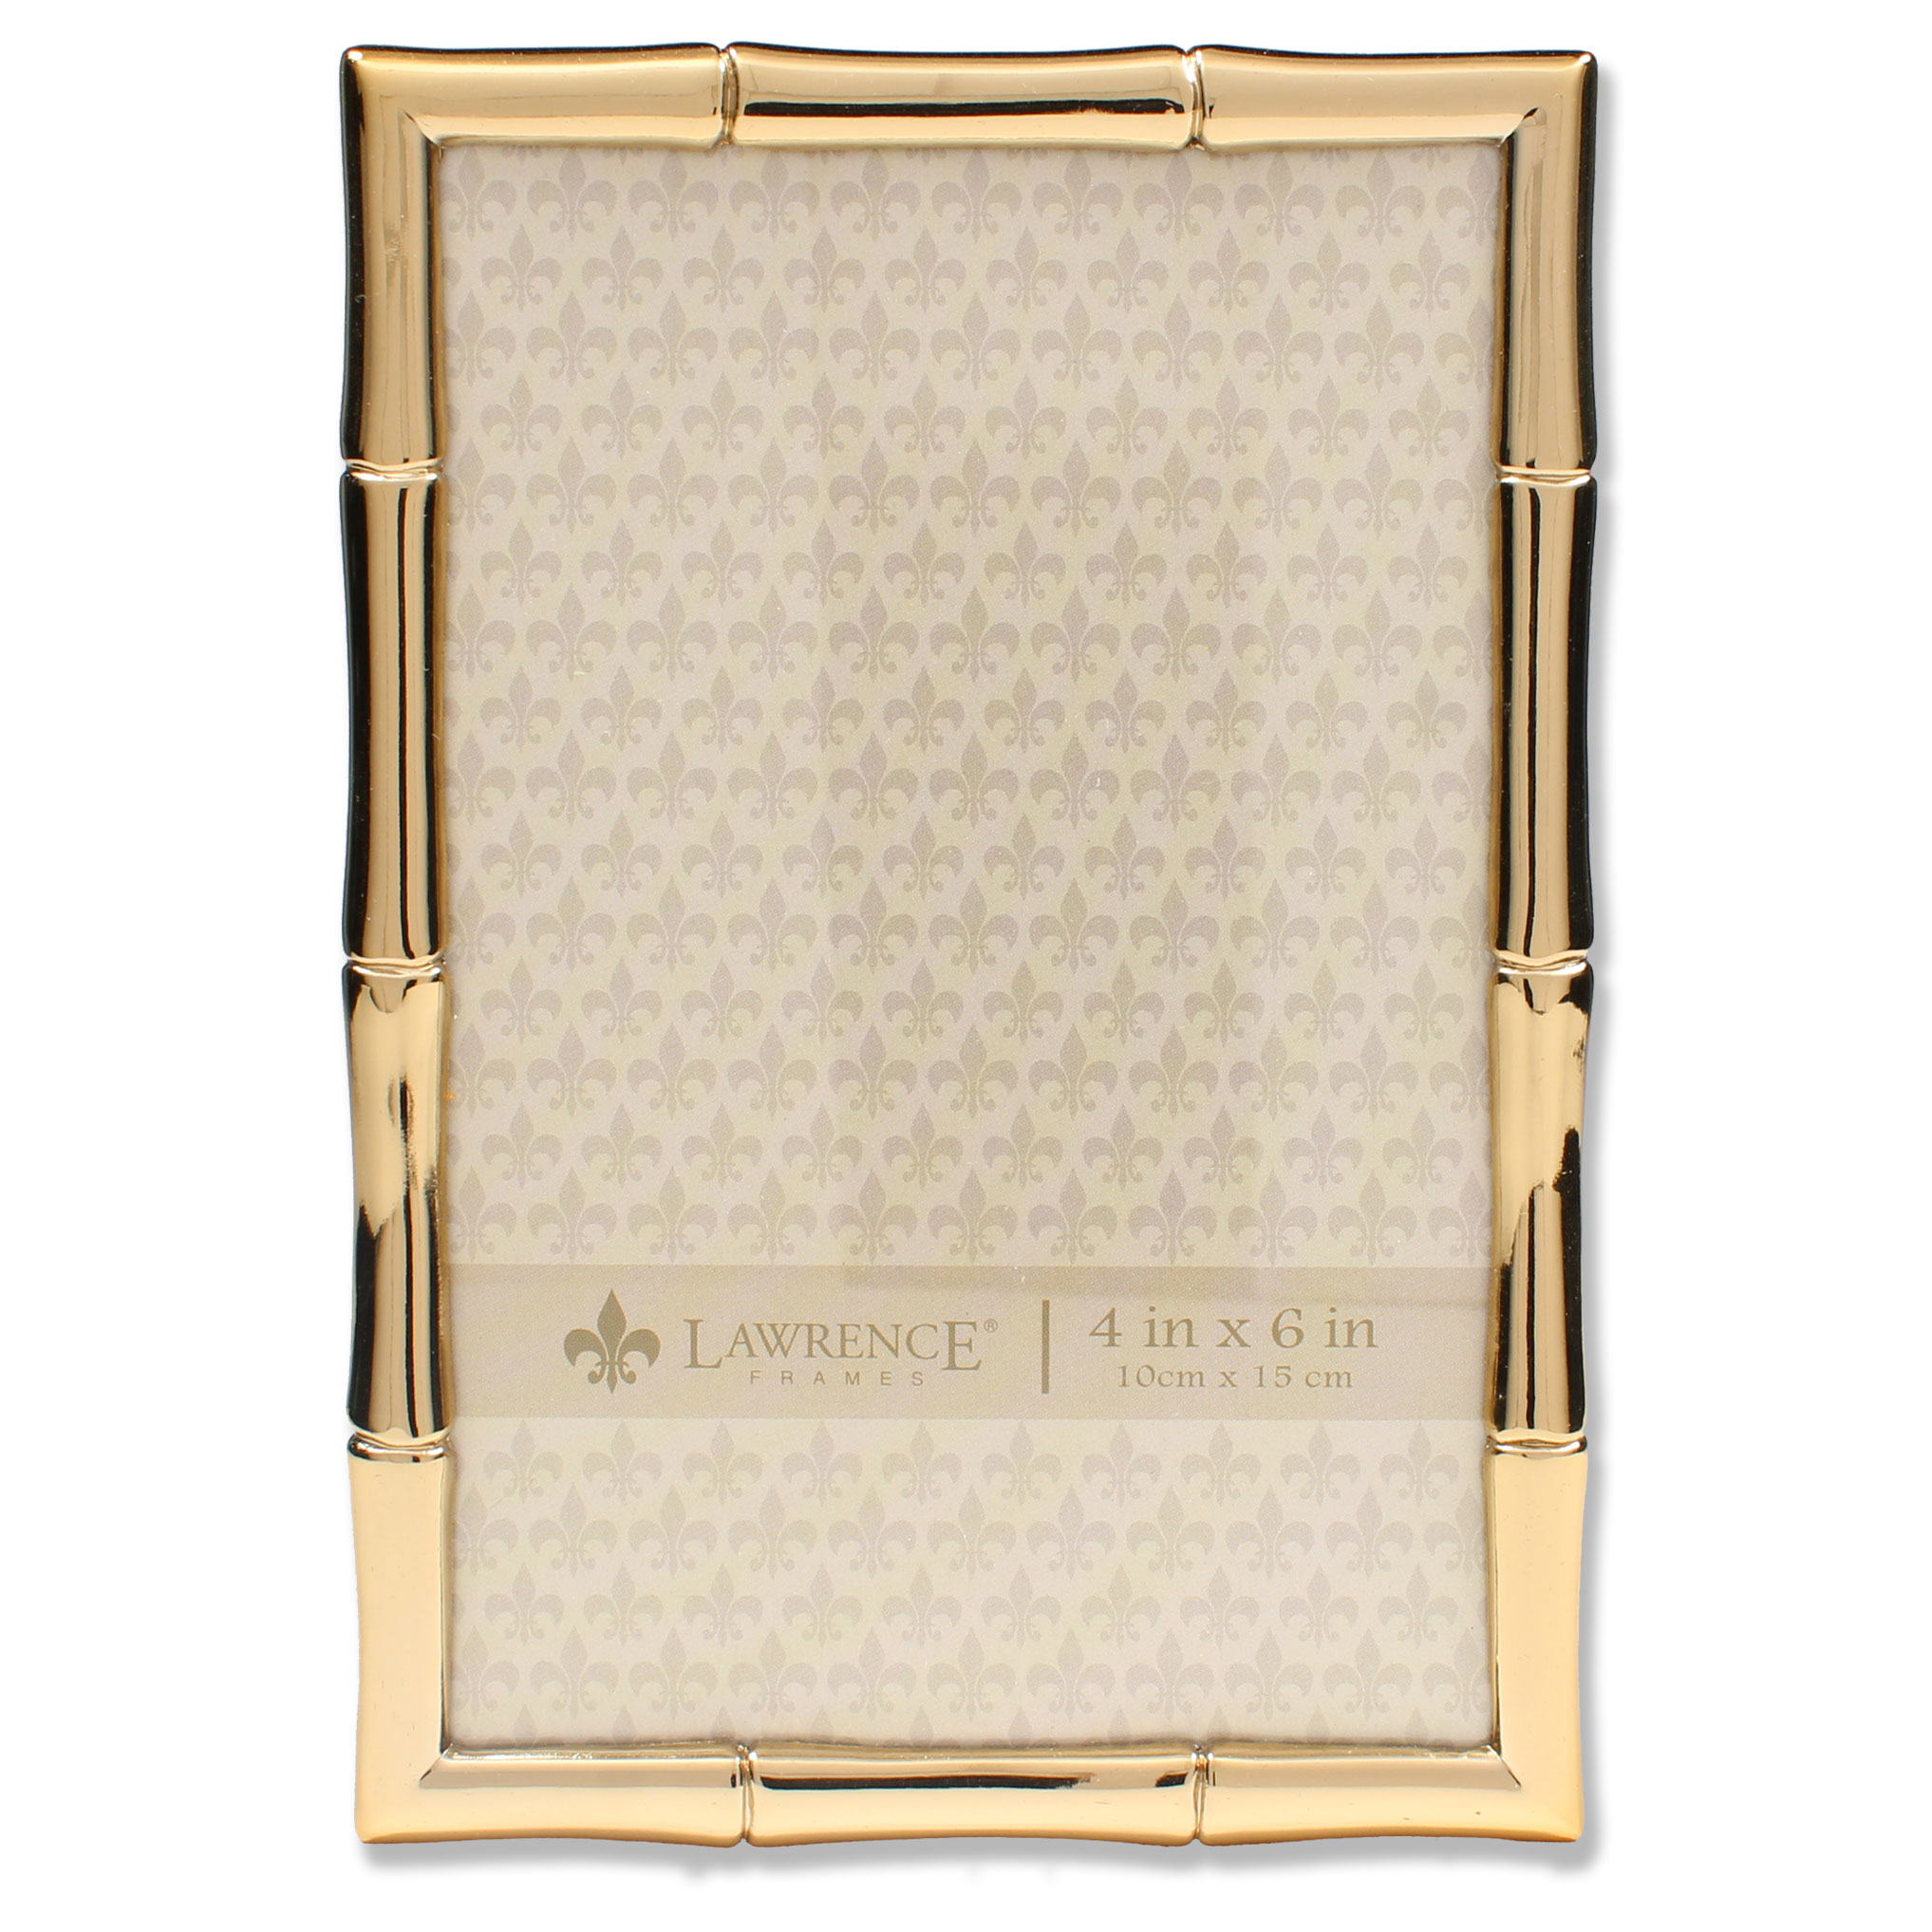 4x6 Gold Metal Picture Frame with Bamboo Design | PhotoFrames.net